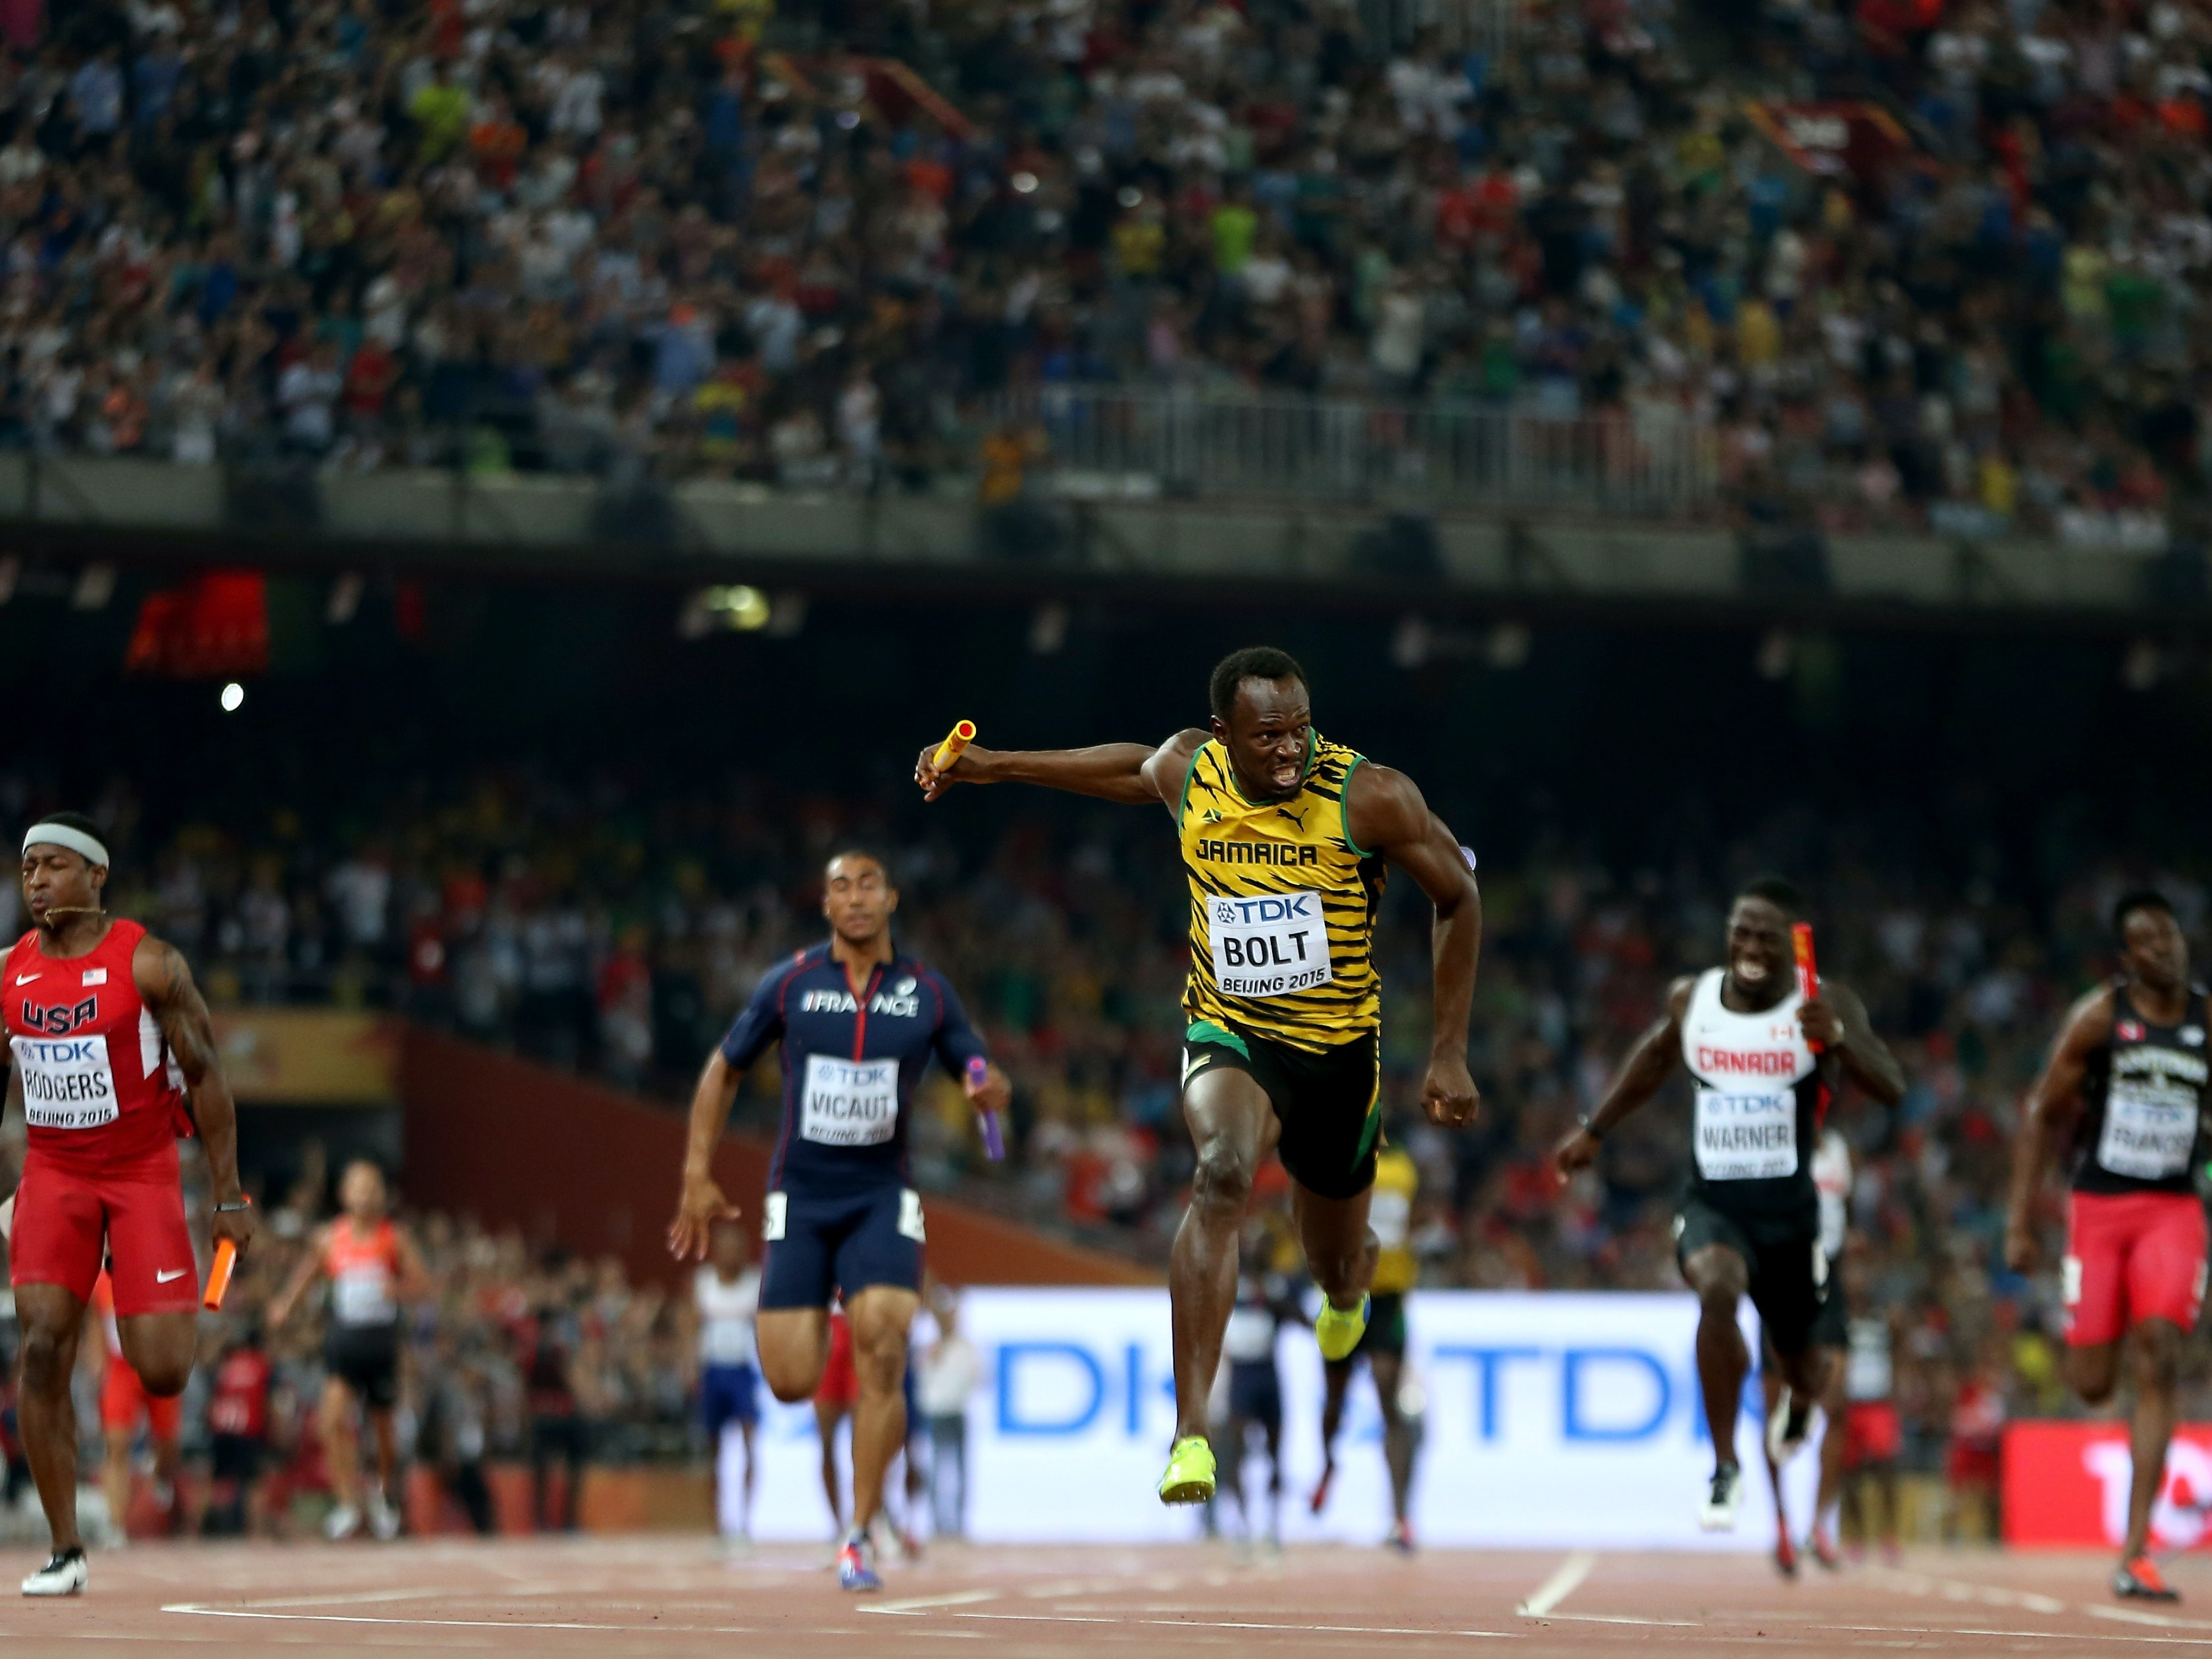 Usain Bolt crosses the finish line to win gold in the 4x100 meter relay at the IAAF World Athletics Championships Beijing in 2015.